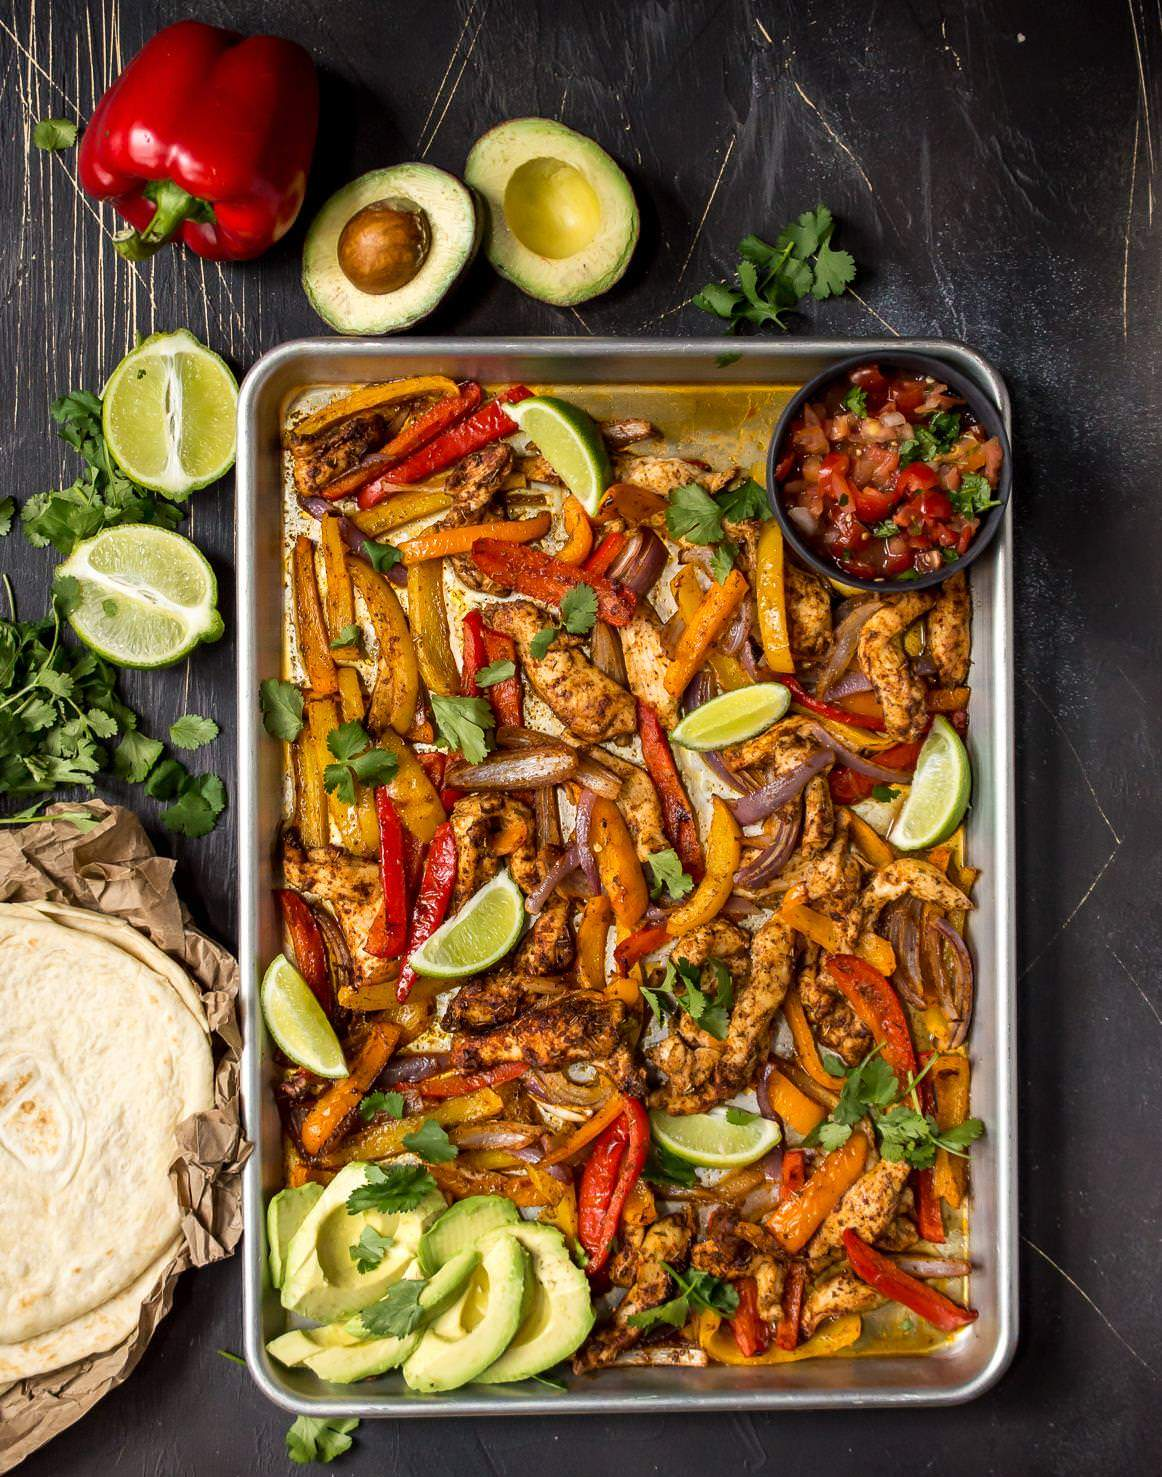 whole30 dinner of sheet pan chicken fajitas